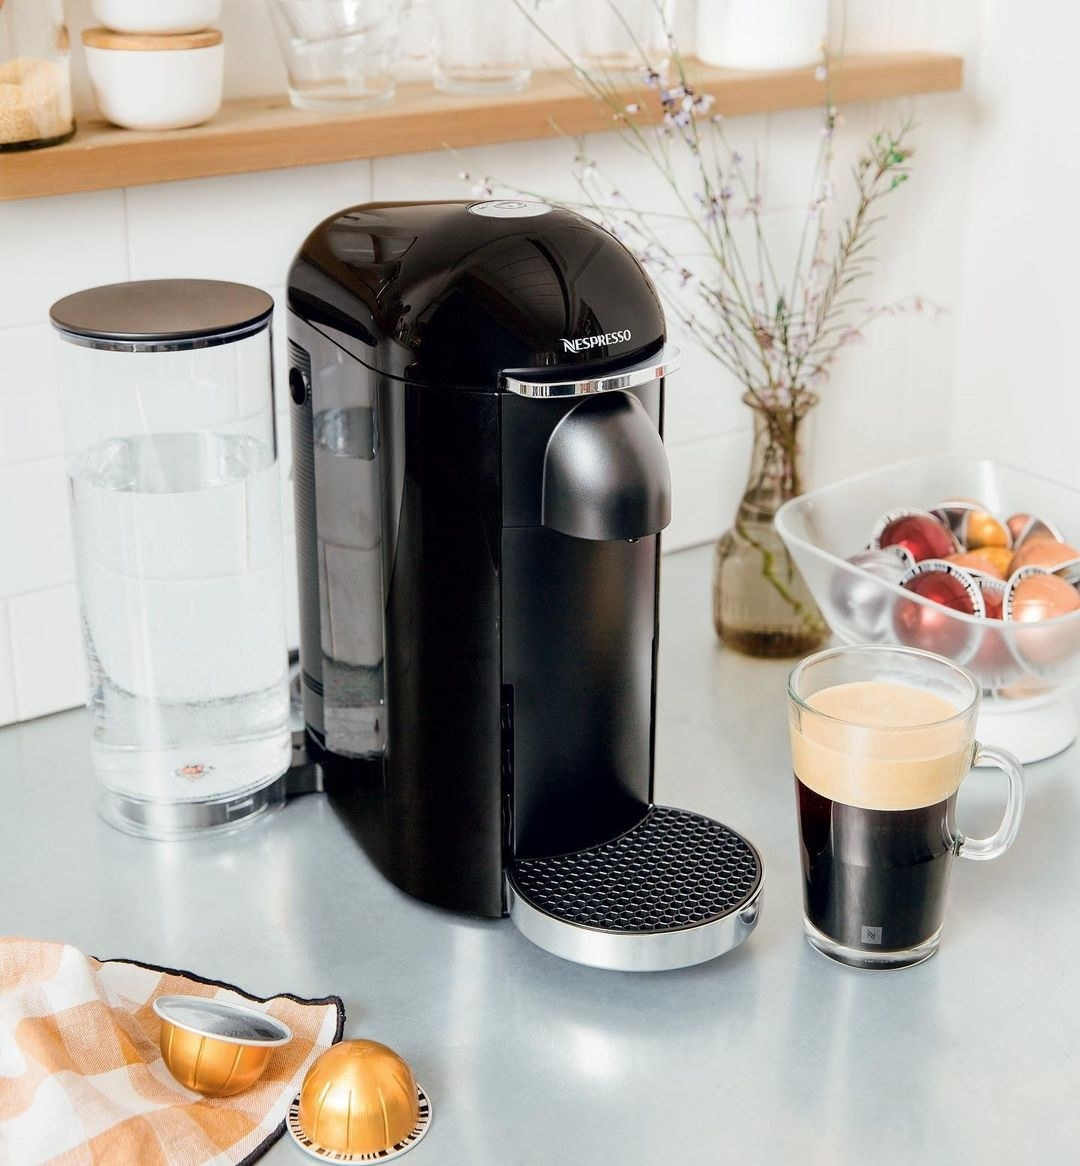 The coffee maker on a kitchen counter